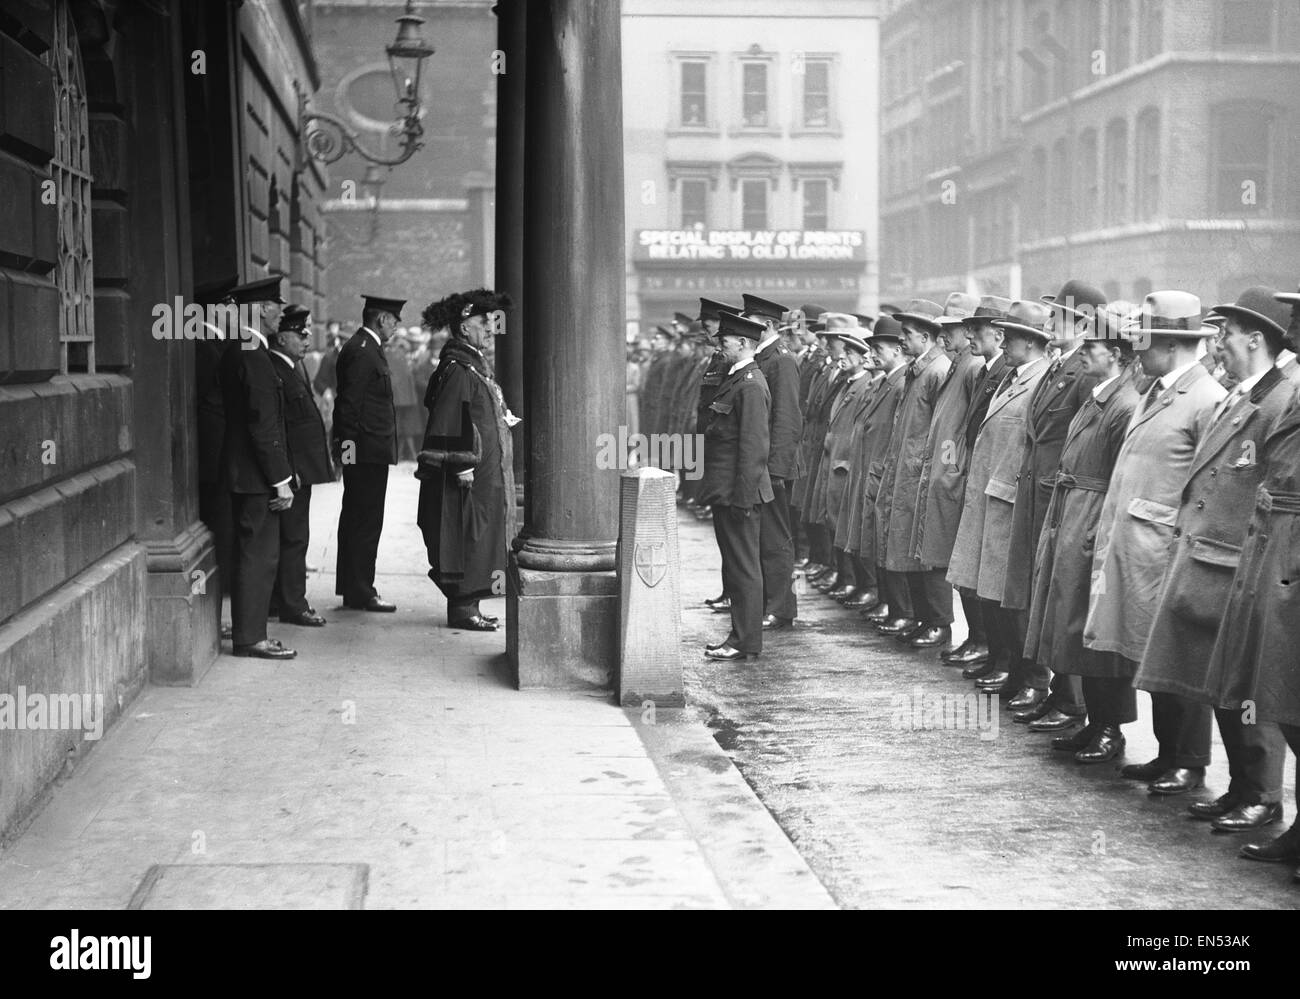 Sir William Pryke the Lord Mayor of London addressing City of London special constables, thanking them for their - Stock Image